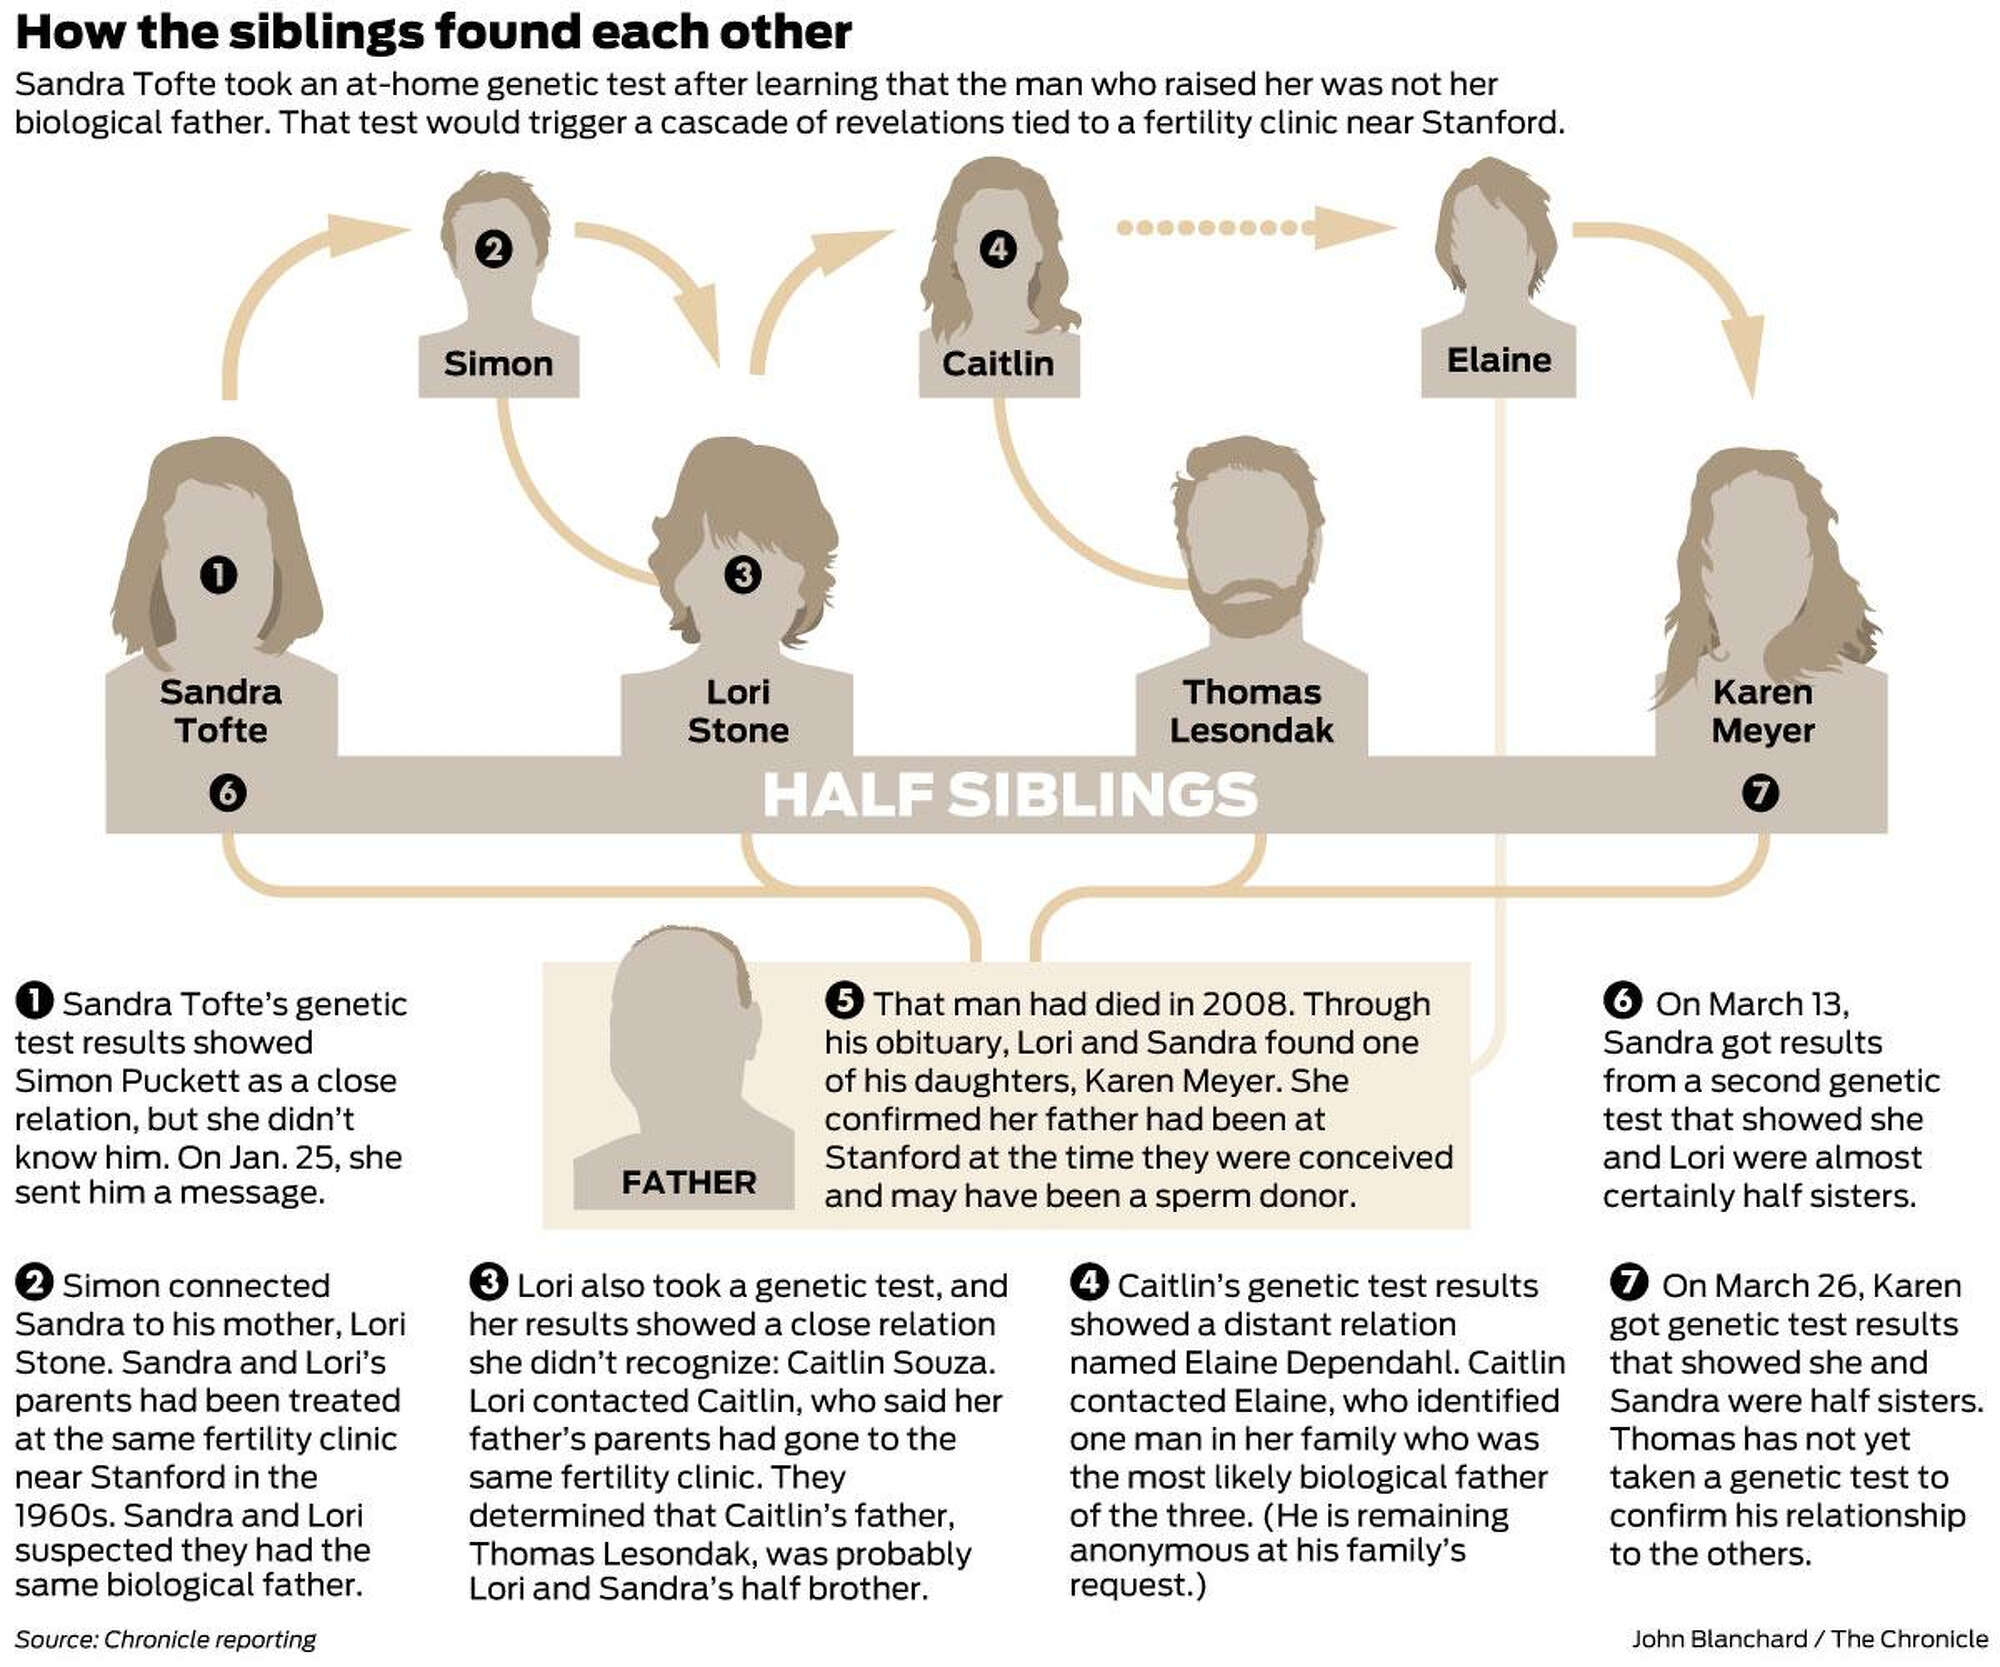 New siblings, old secrets: DNA links 4 strangers through Bay Area